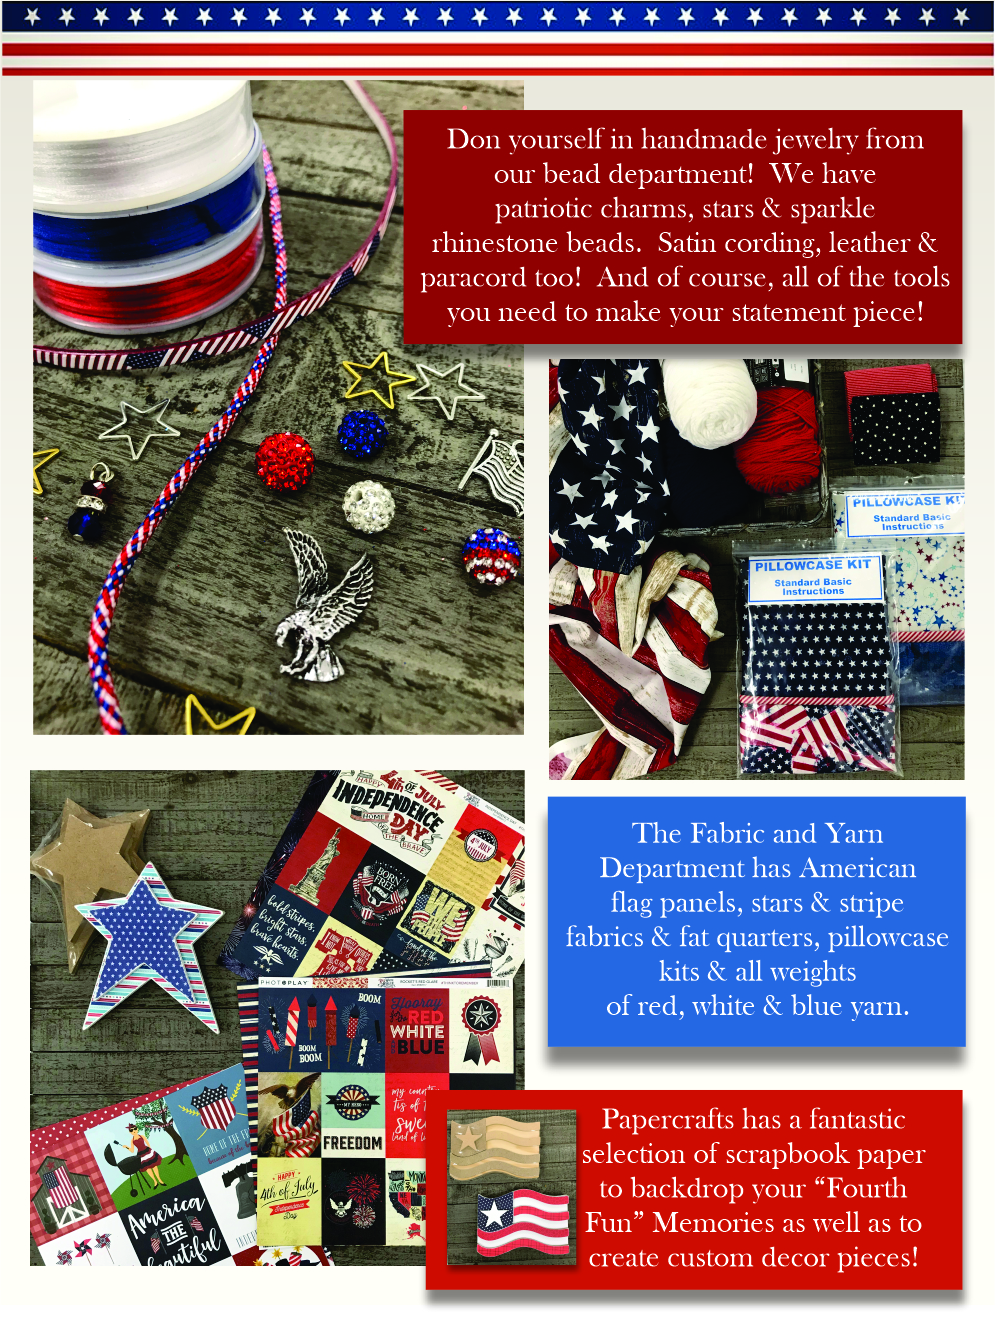 red white and blue ad p2.jpg